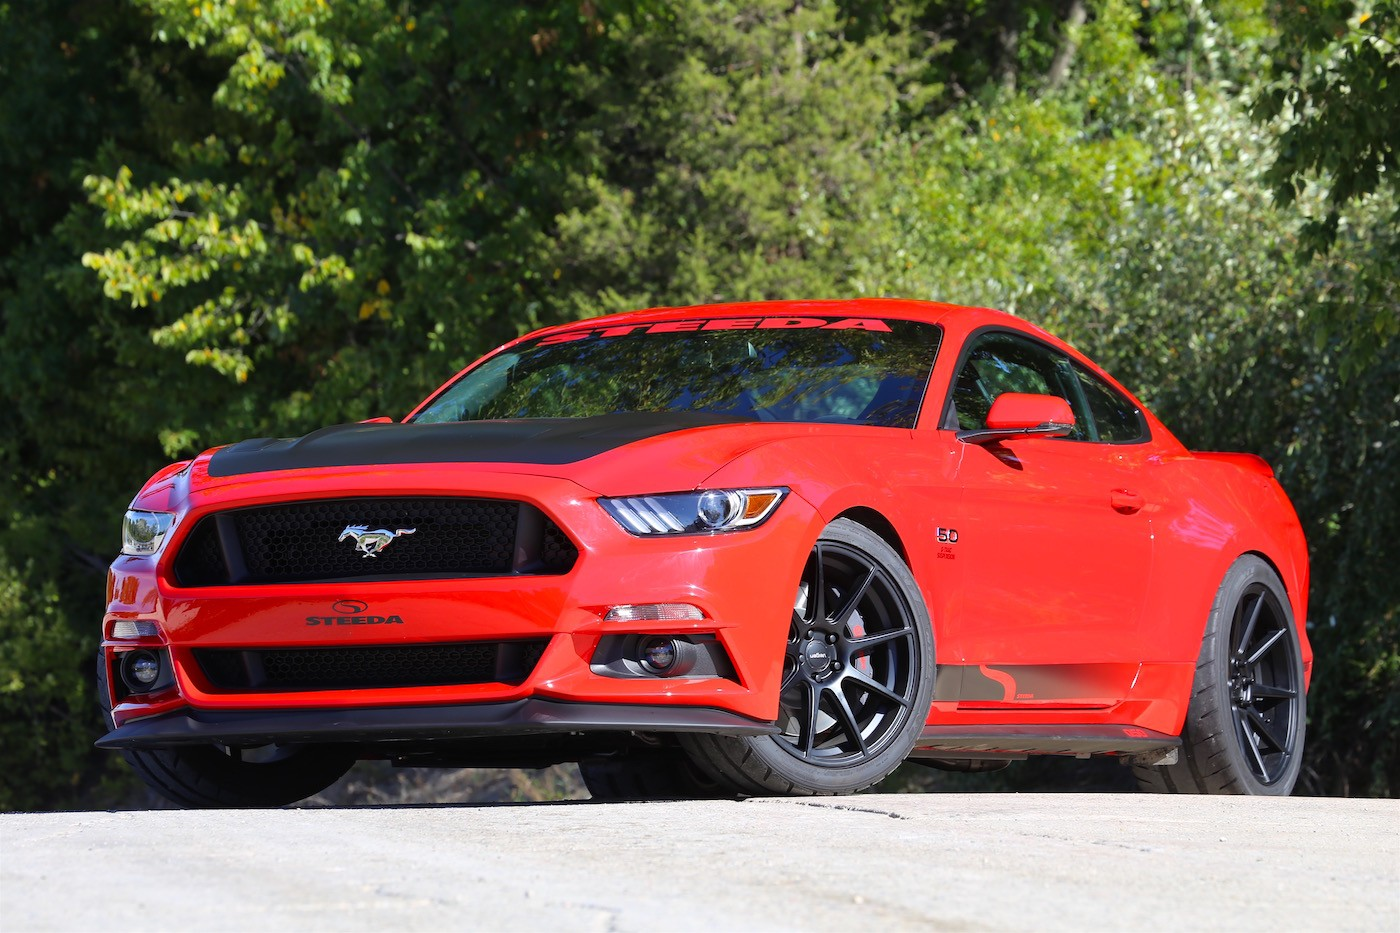 2017 Steeda Q750 StreetFighter Mustang Packs Hellcat ... Mustang